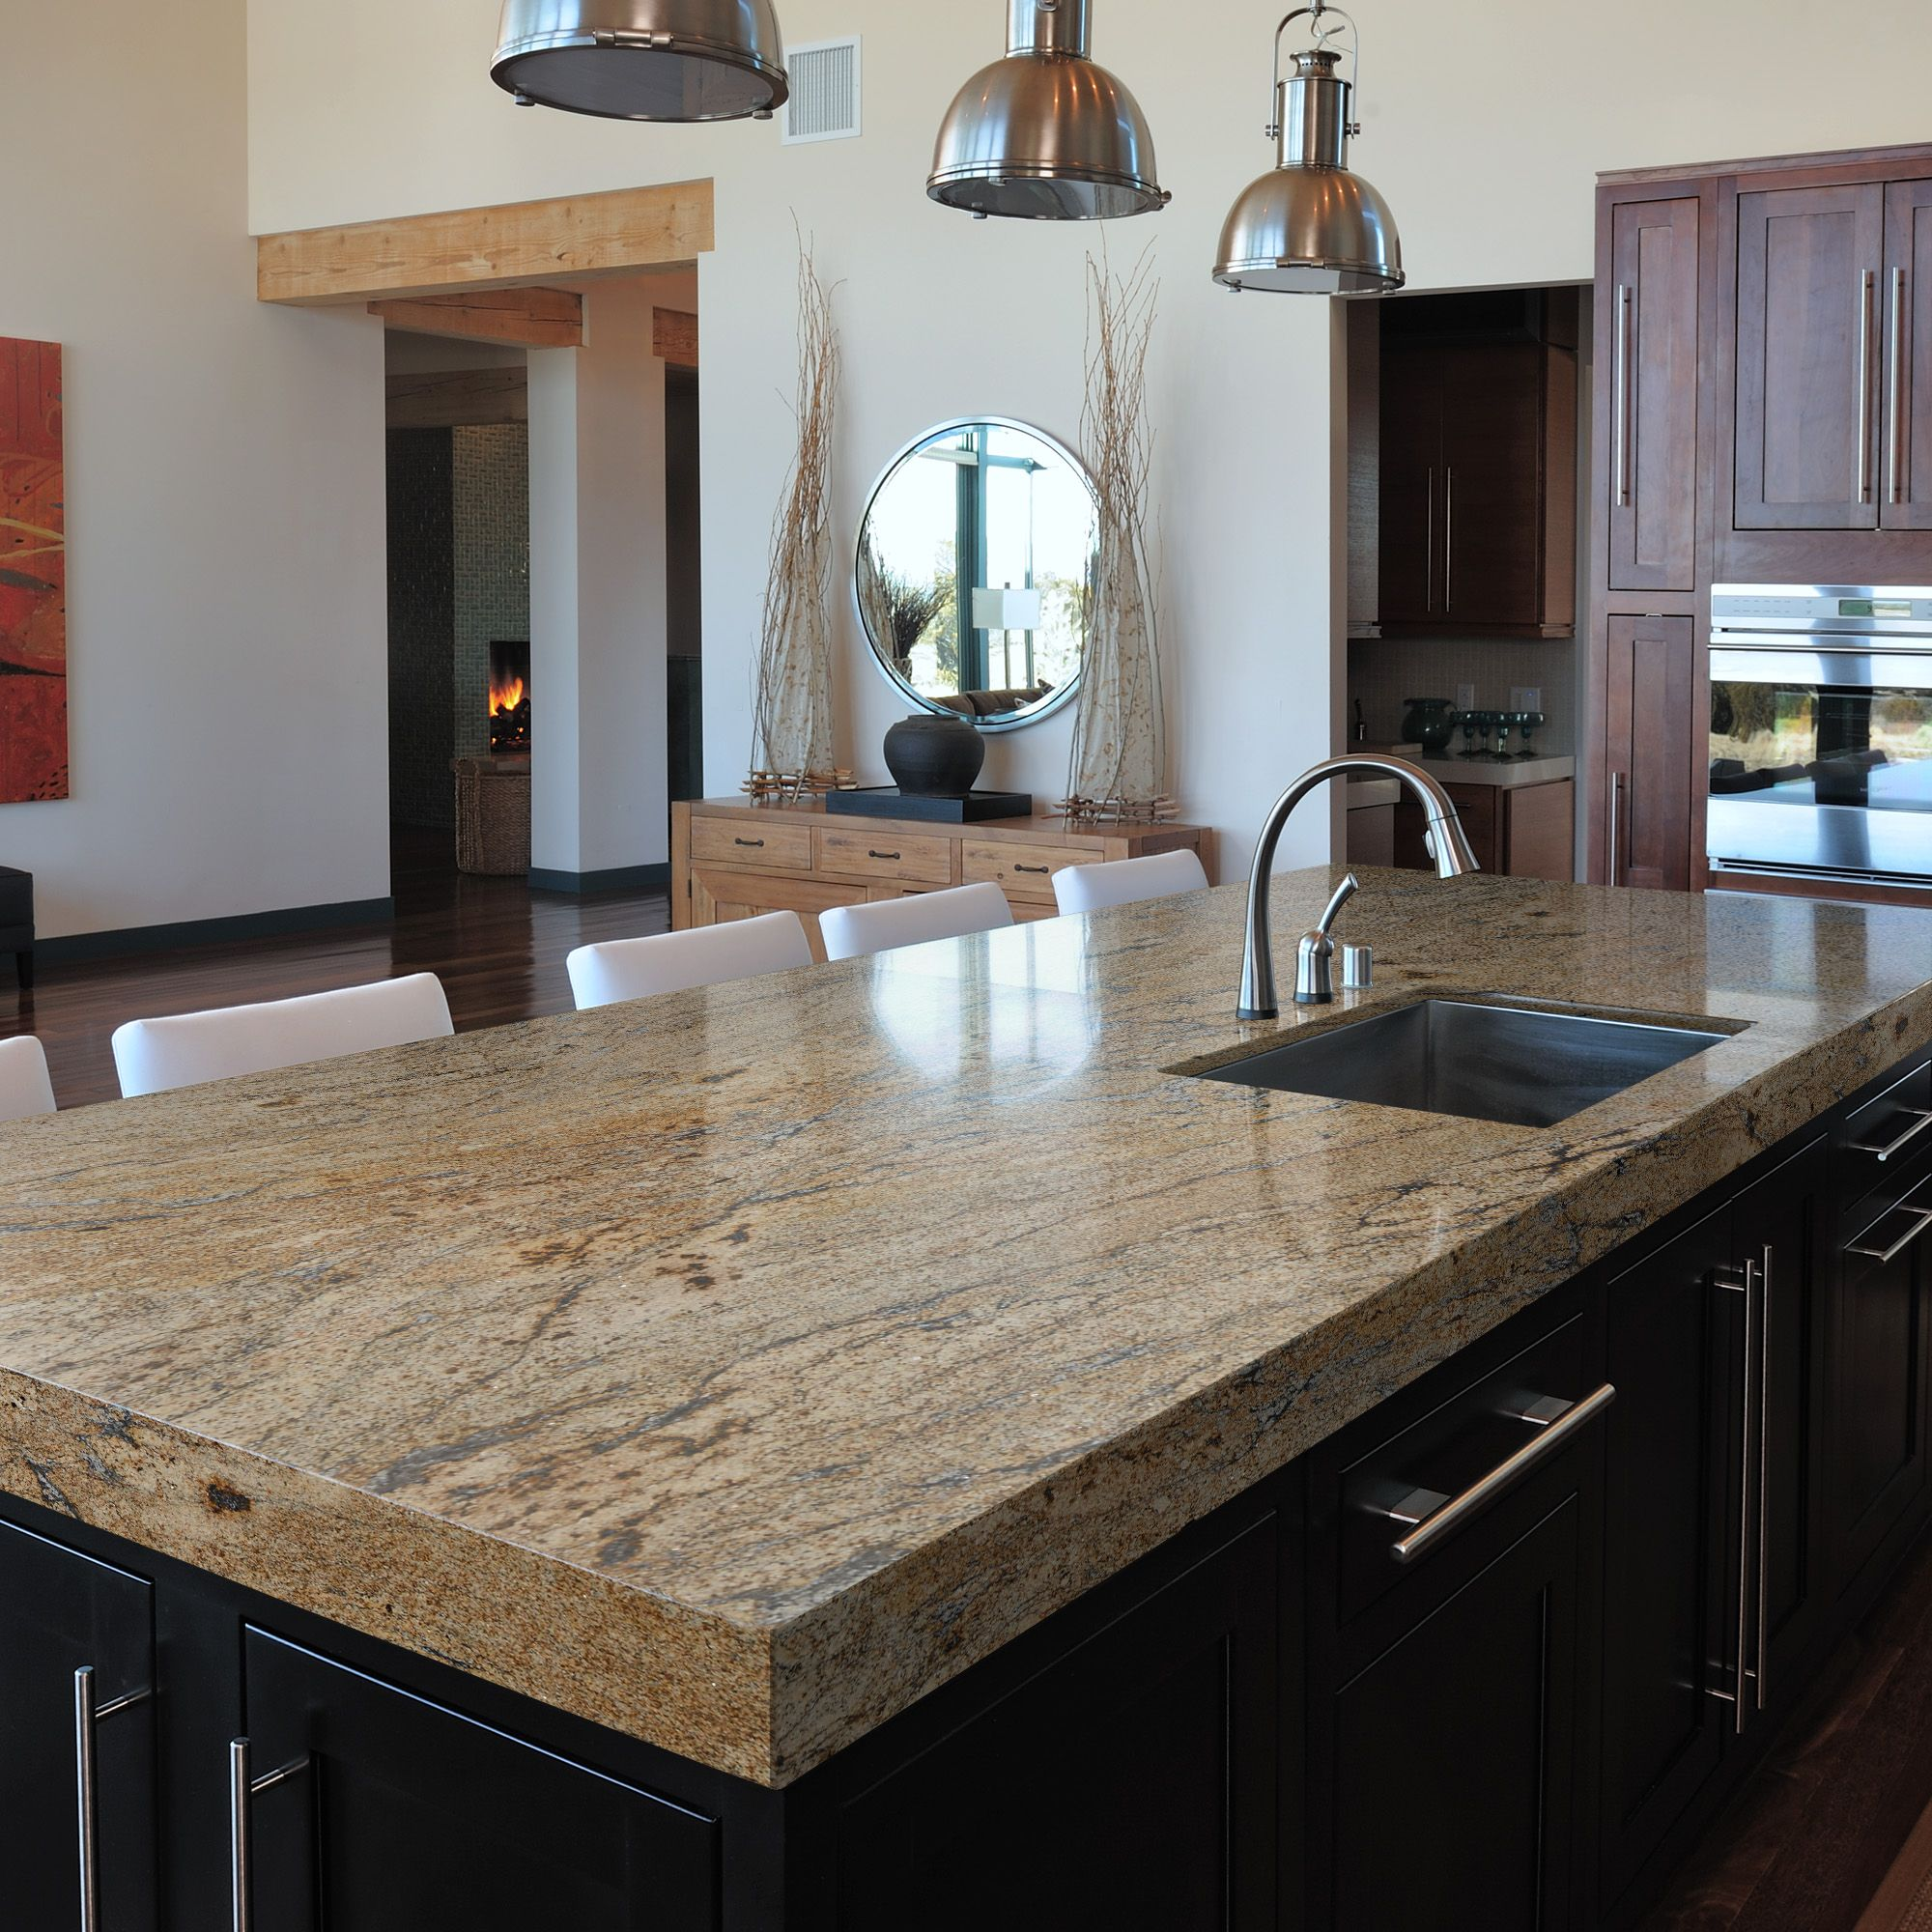 Our Granite For Our New Kitchen Ira Picked Out Awesome